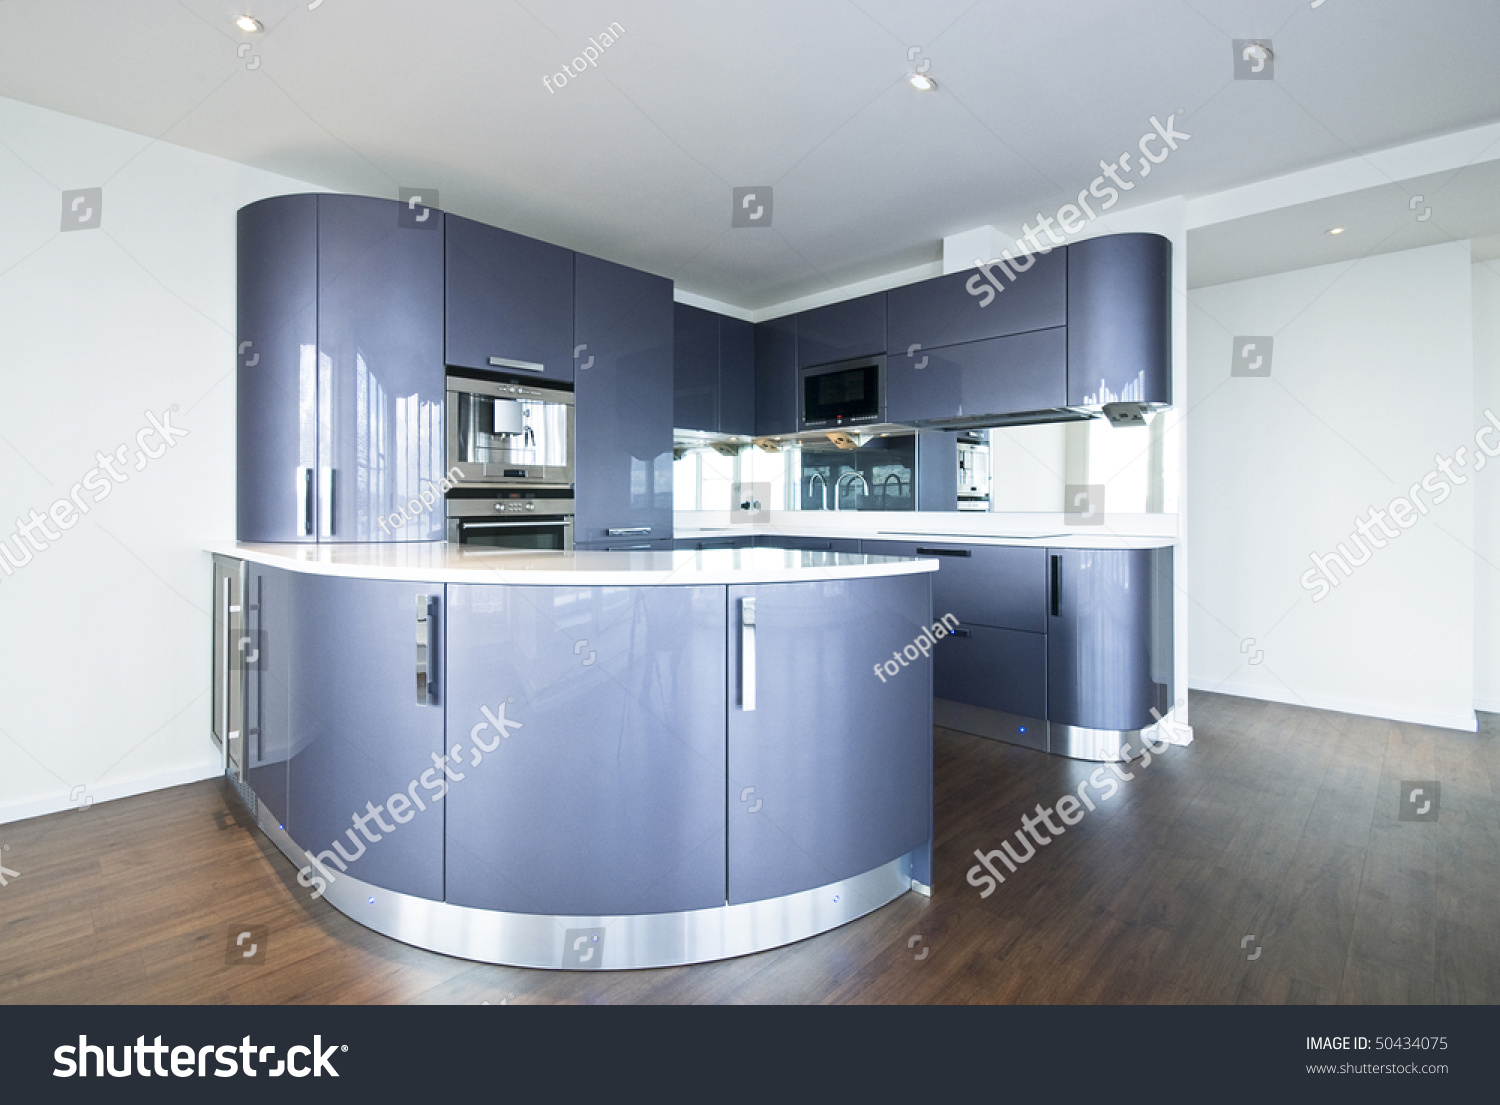 Ultra Modern Designer Kitchen With Modern Appliances In Metal Blue And Gray